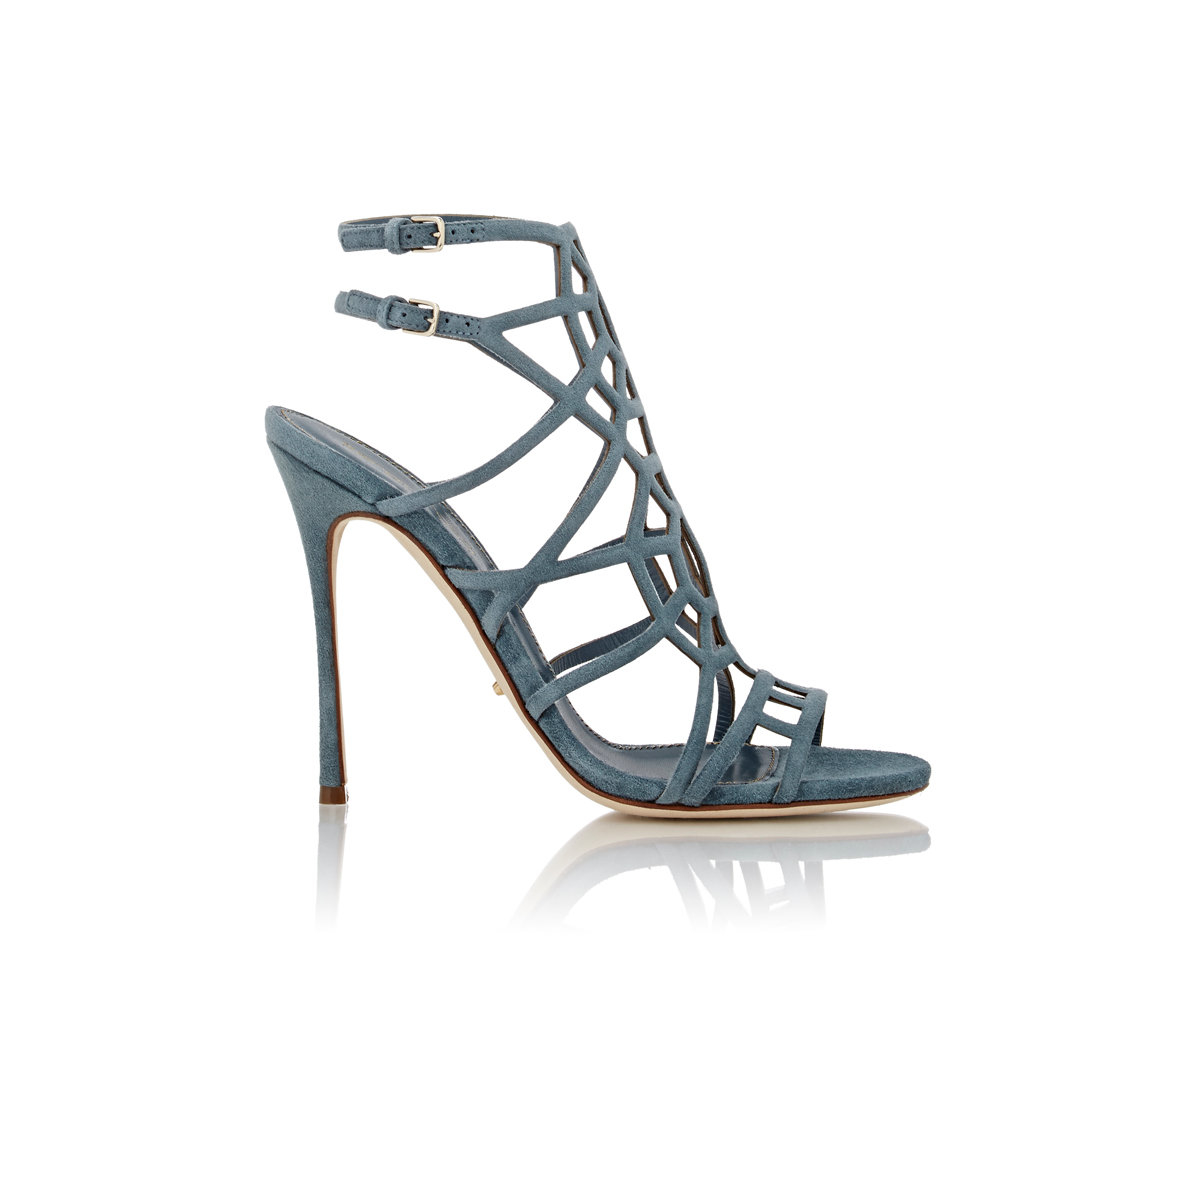 d1f041cb45c Lyst - Sergio Rossi Women s Suede Puzzle Caged Sandals in Green